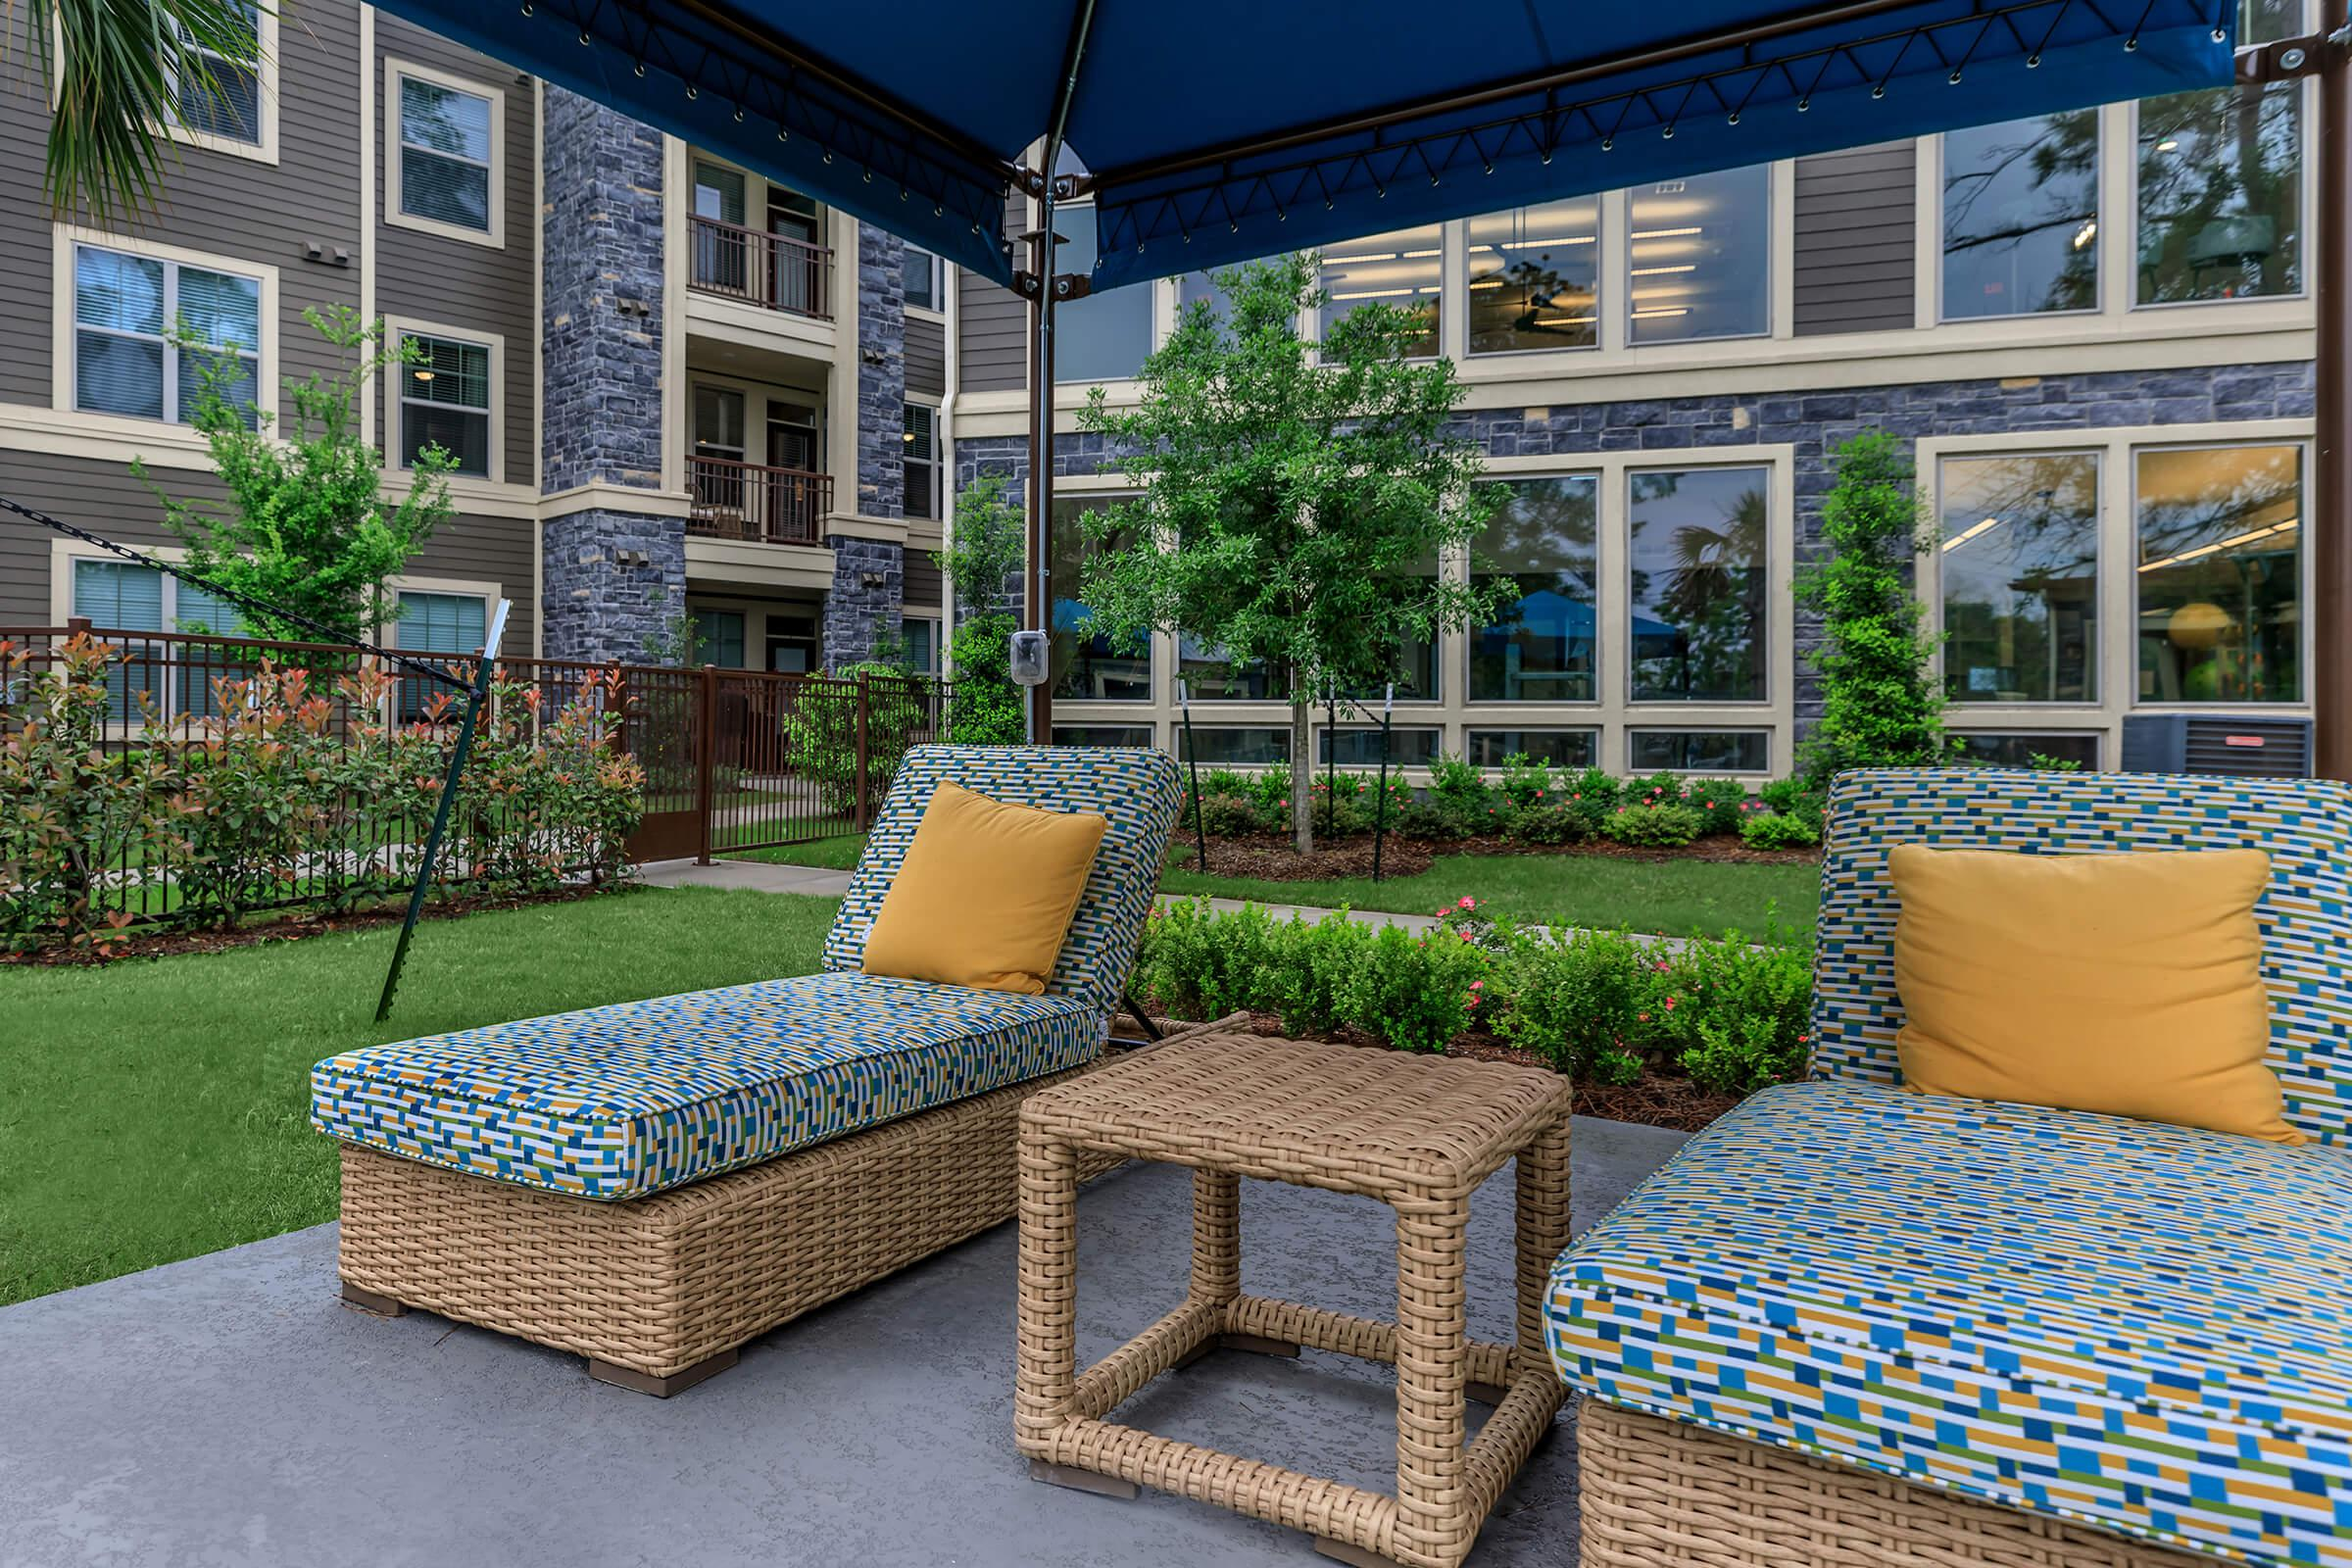 Cabana seating area with two padded loungers and green landscaping backdrop.